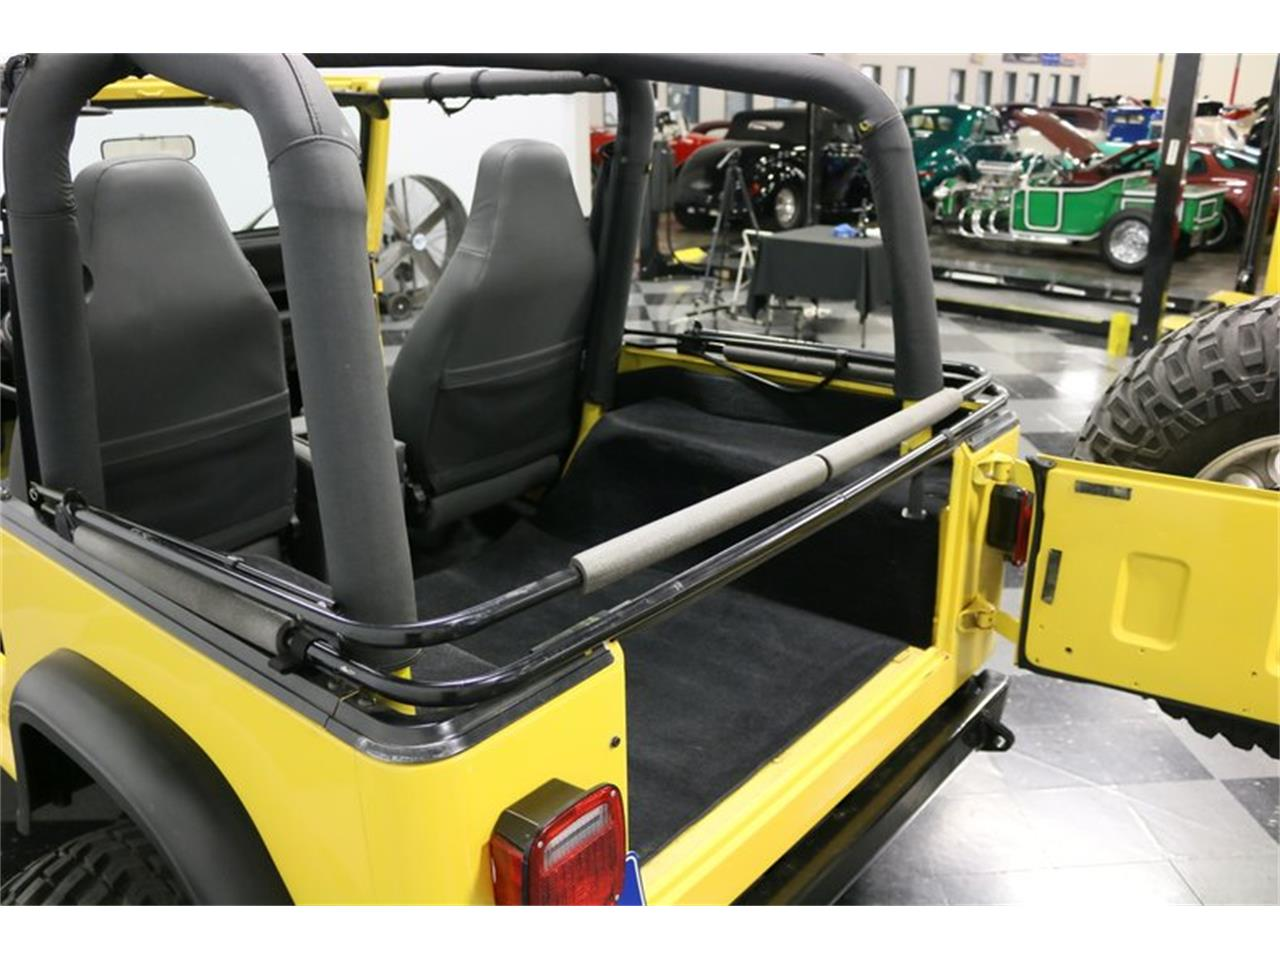 Large Picture of 1993 Wrangler located in Texas Offered by Streetside Classics - Dallas / Fort Worth - P701